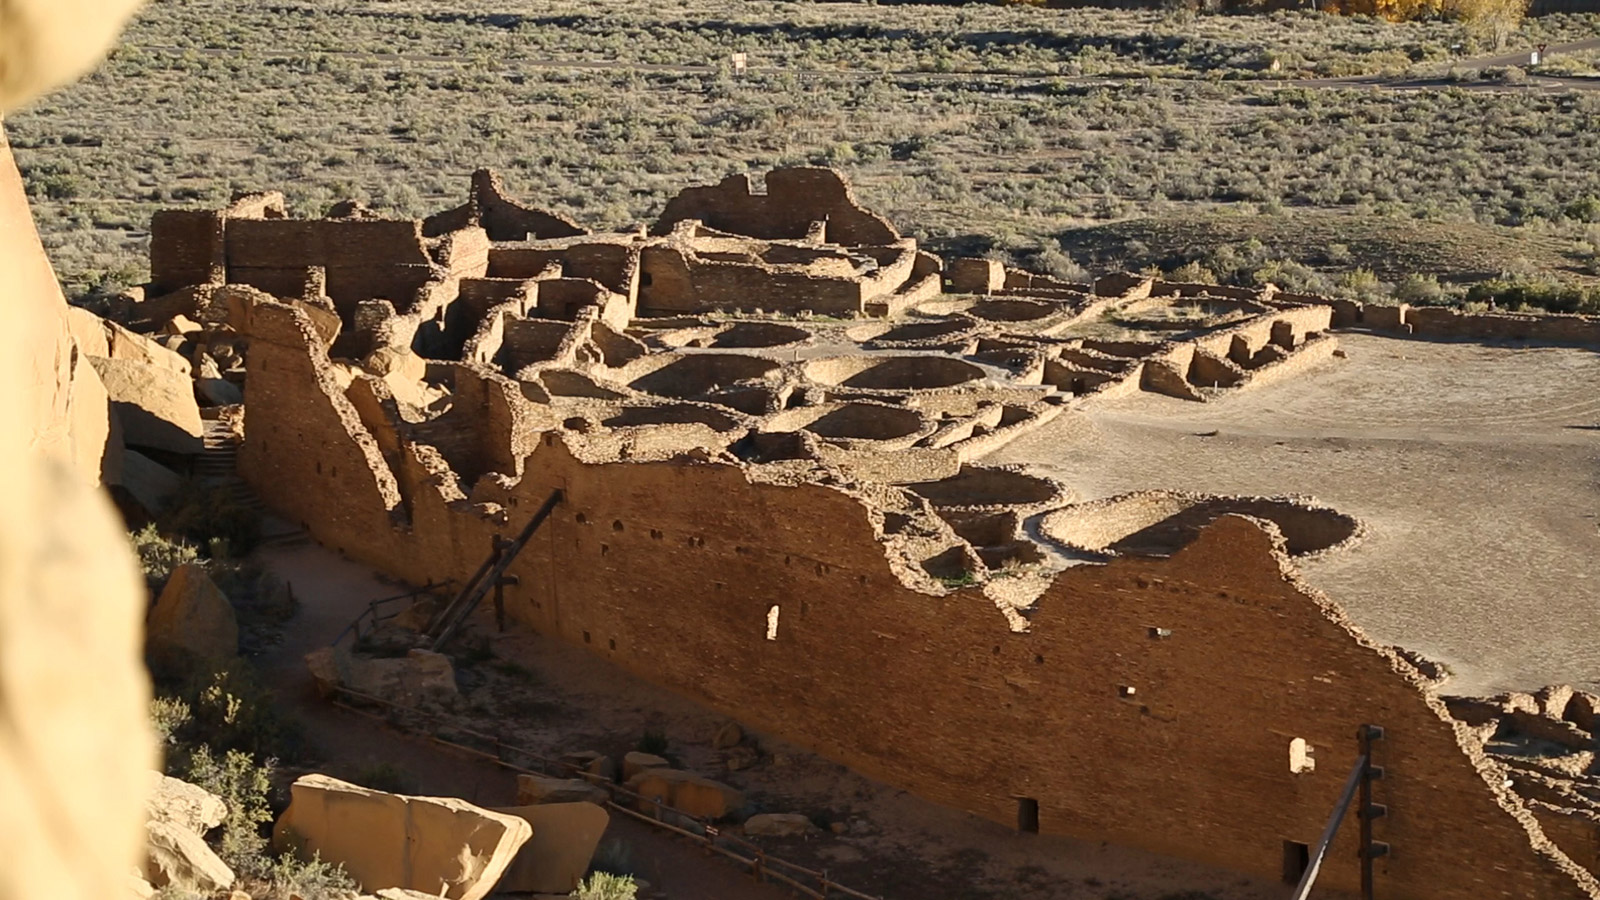 UNM students uncovering mysteries of the past